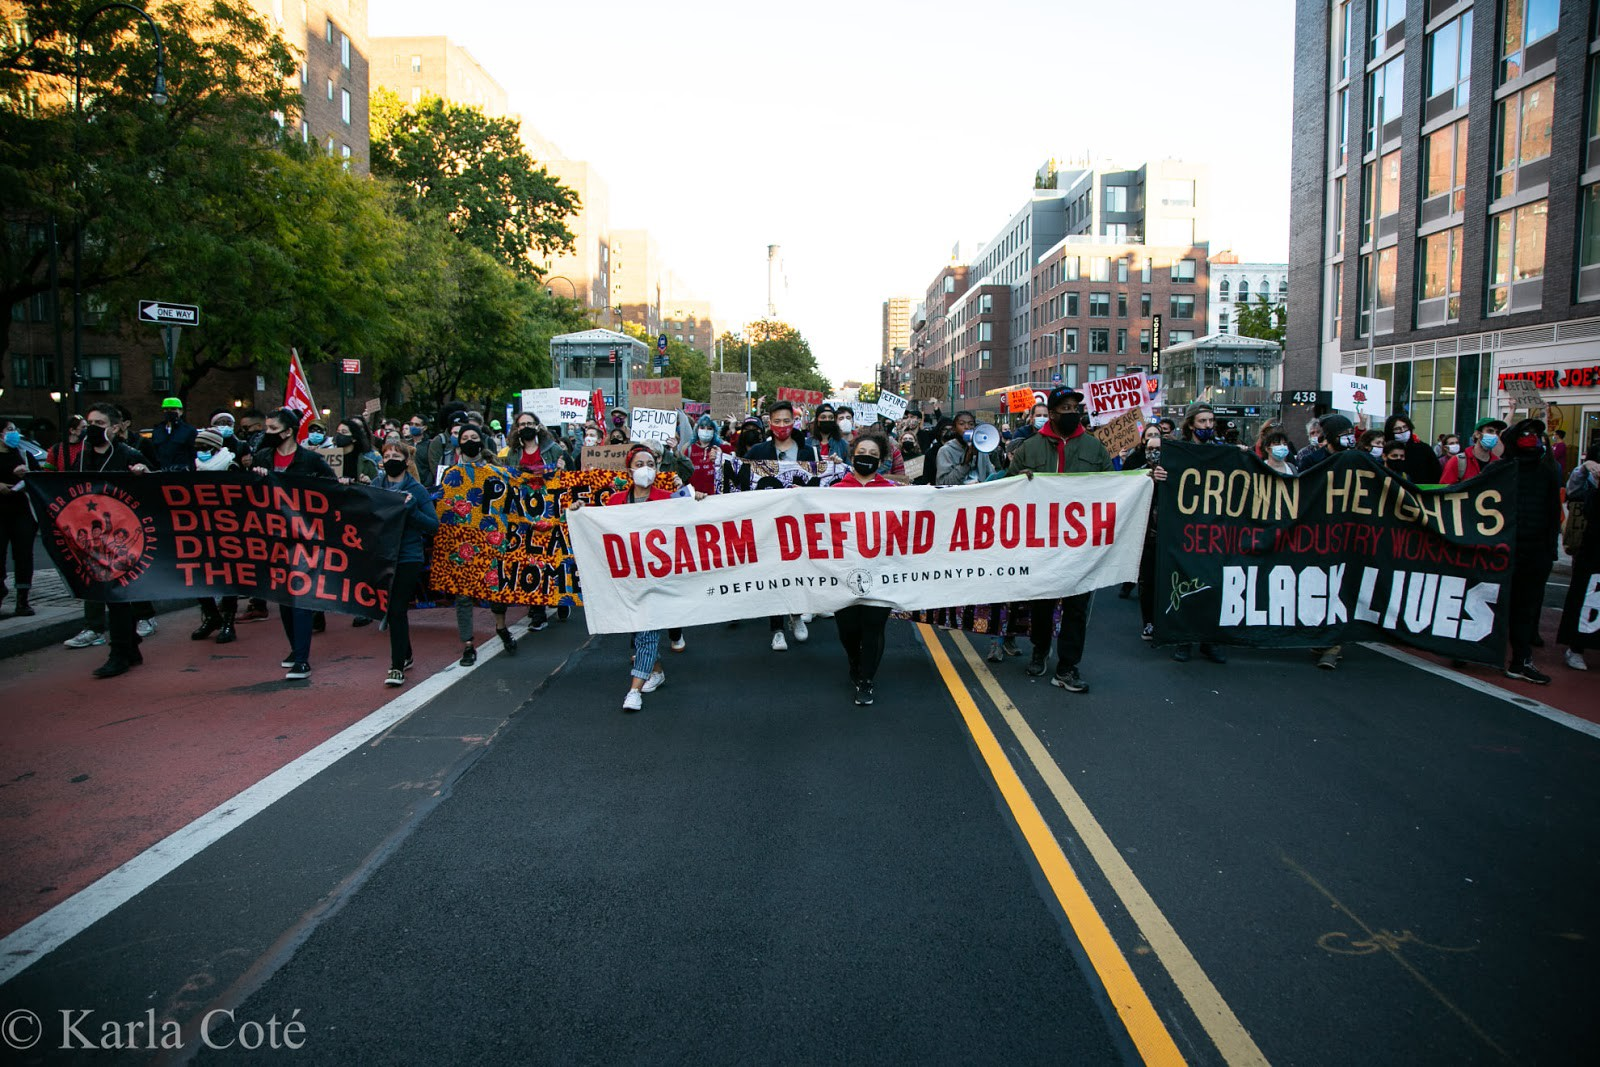 """Image depicts hundreds of protesters gathered on October 17, 2020 to support the demand to defund the NYPD, tax the rich, and stop mass layoffs. The most prominent banners held by protesters in this image read """"Defund, Disarm & Disband the Police,"""" """"Protect Black Women,"""" """"Disarm Defund Abolish 